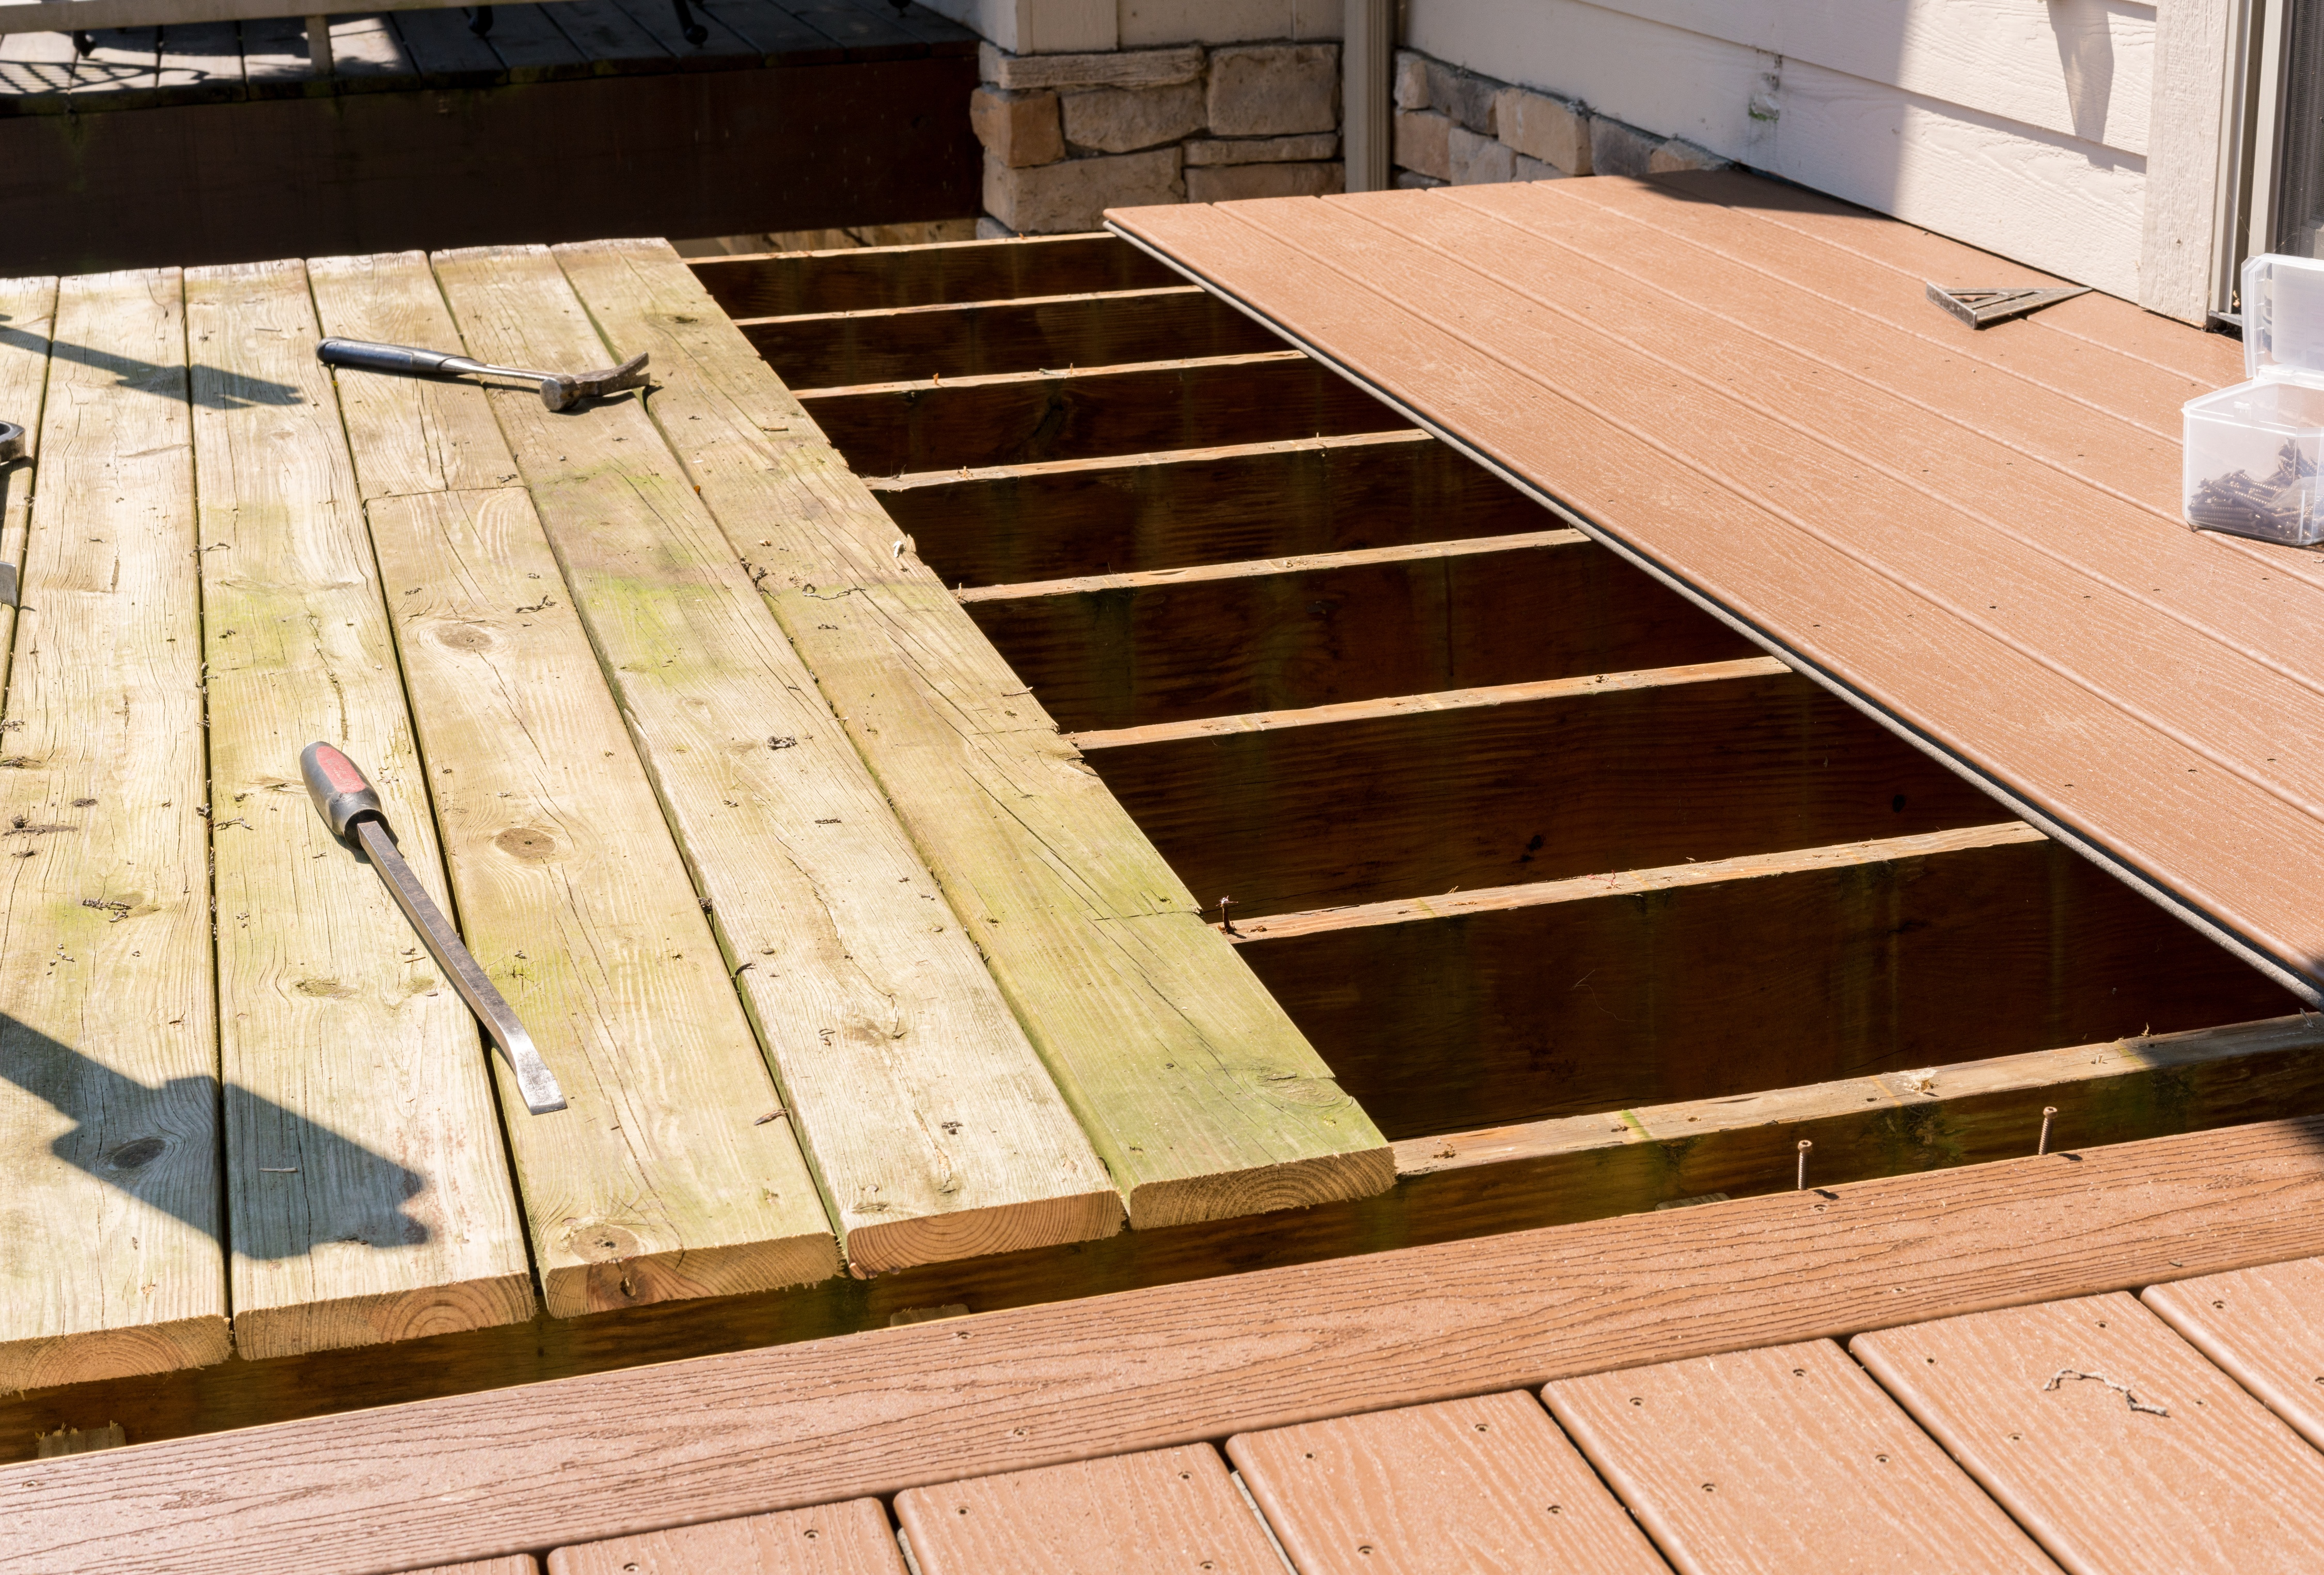 Azek and Trex Composite Decking: Comparing the Two Leading Brands